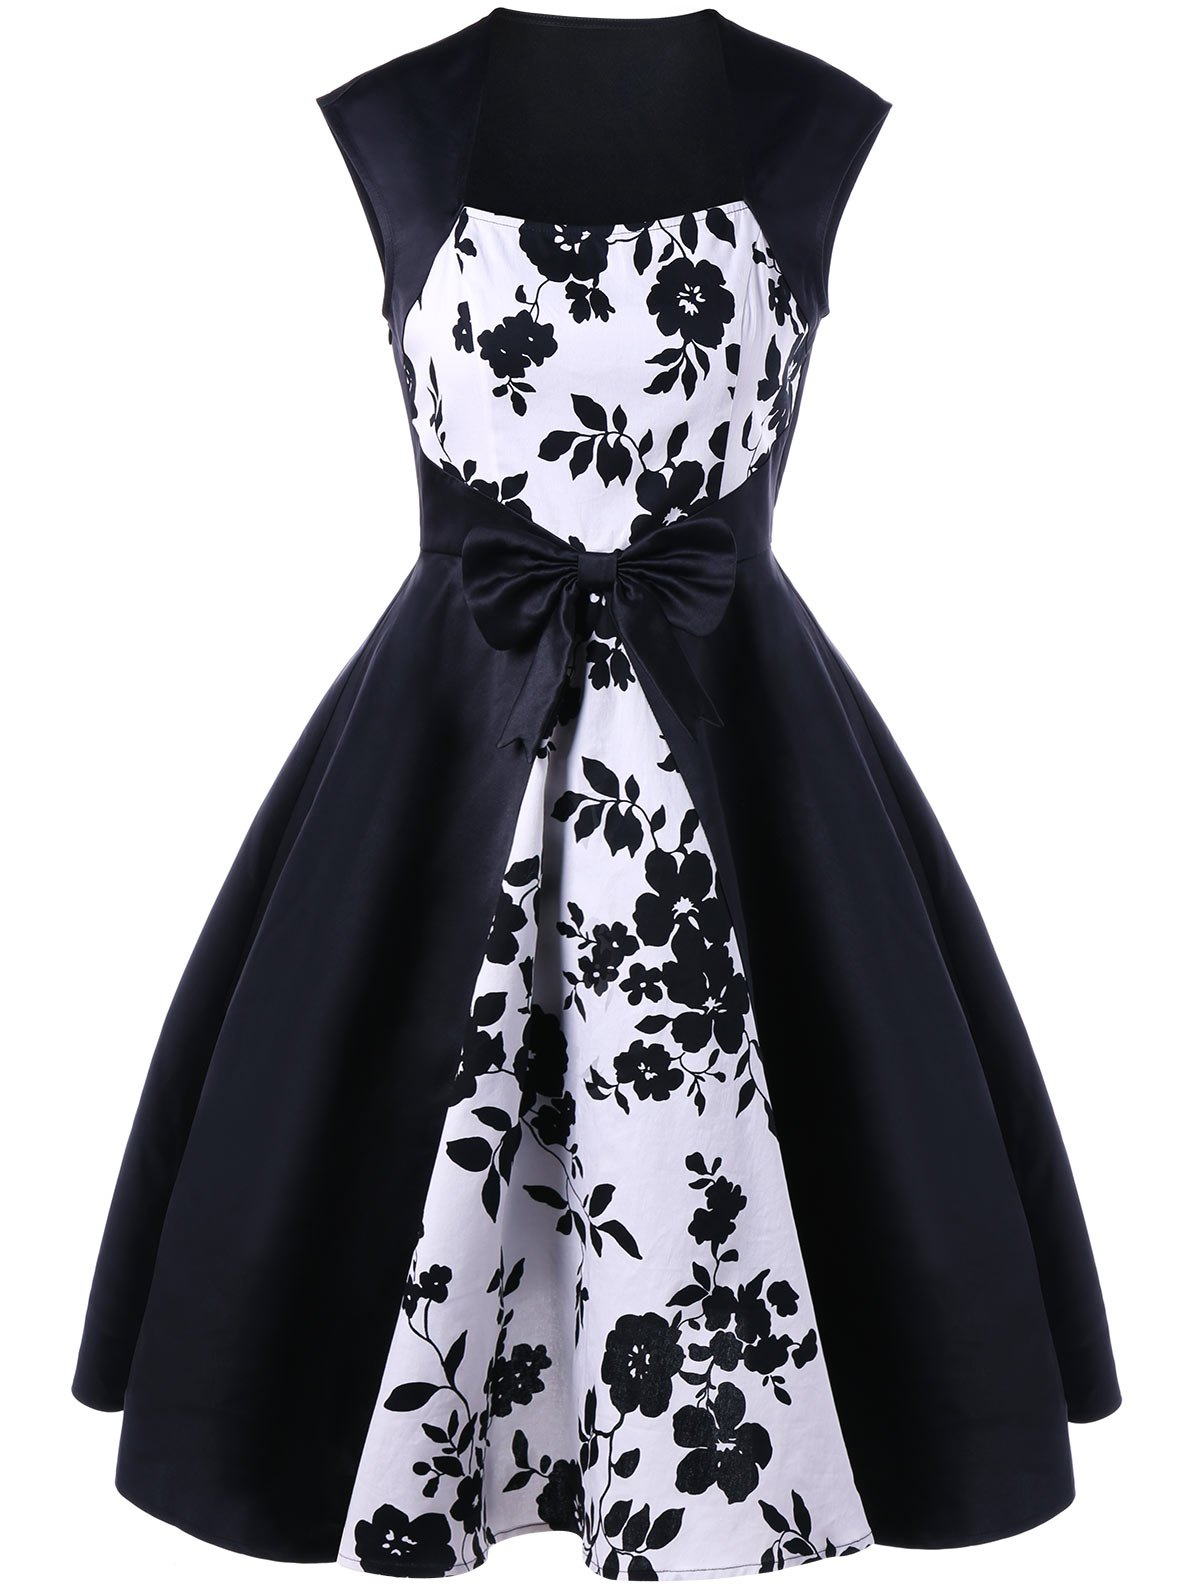 Discount Bowknot Decorated Floral 50s Swing Dress